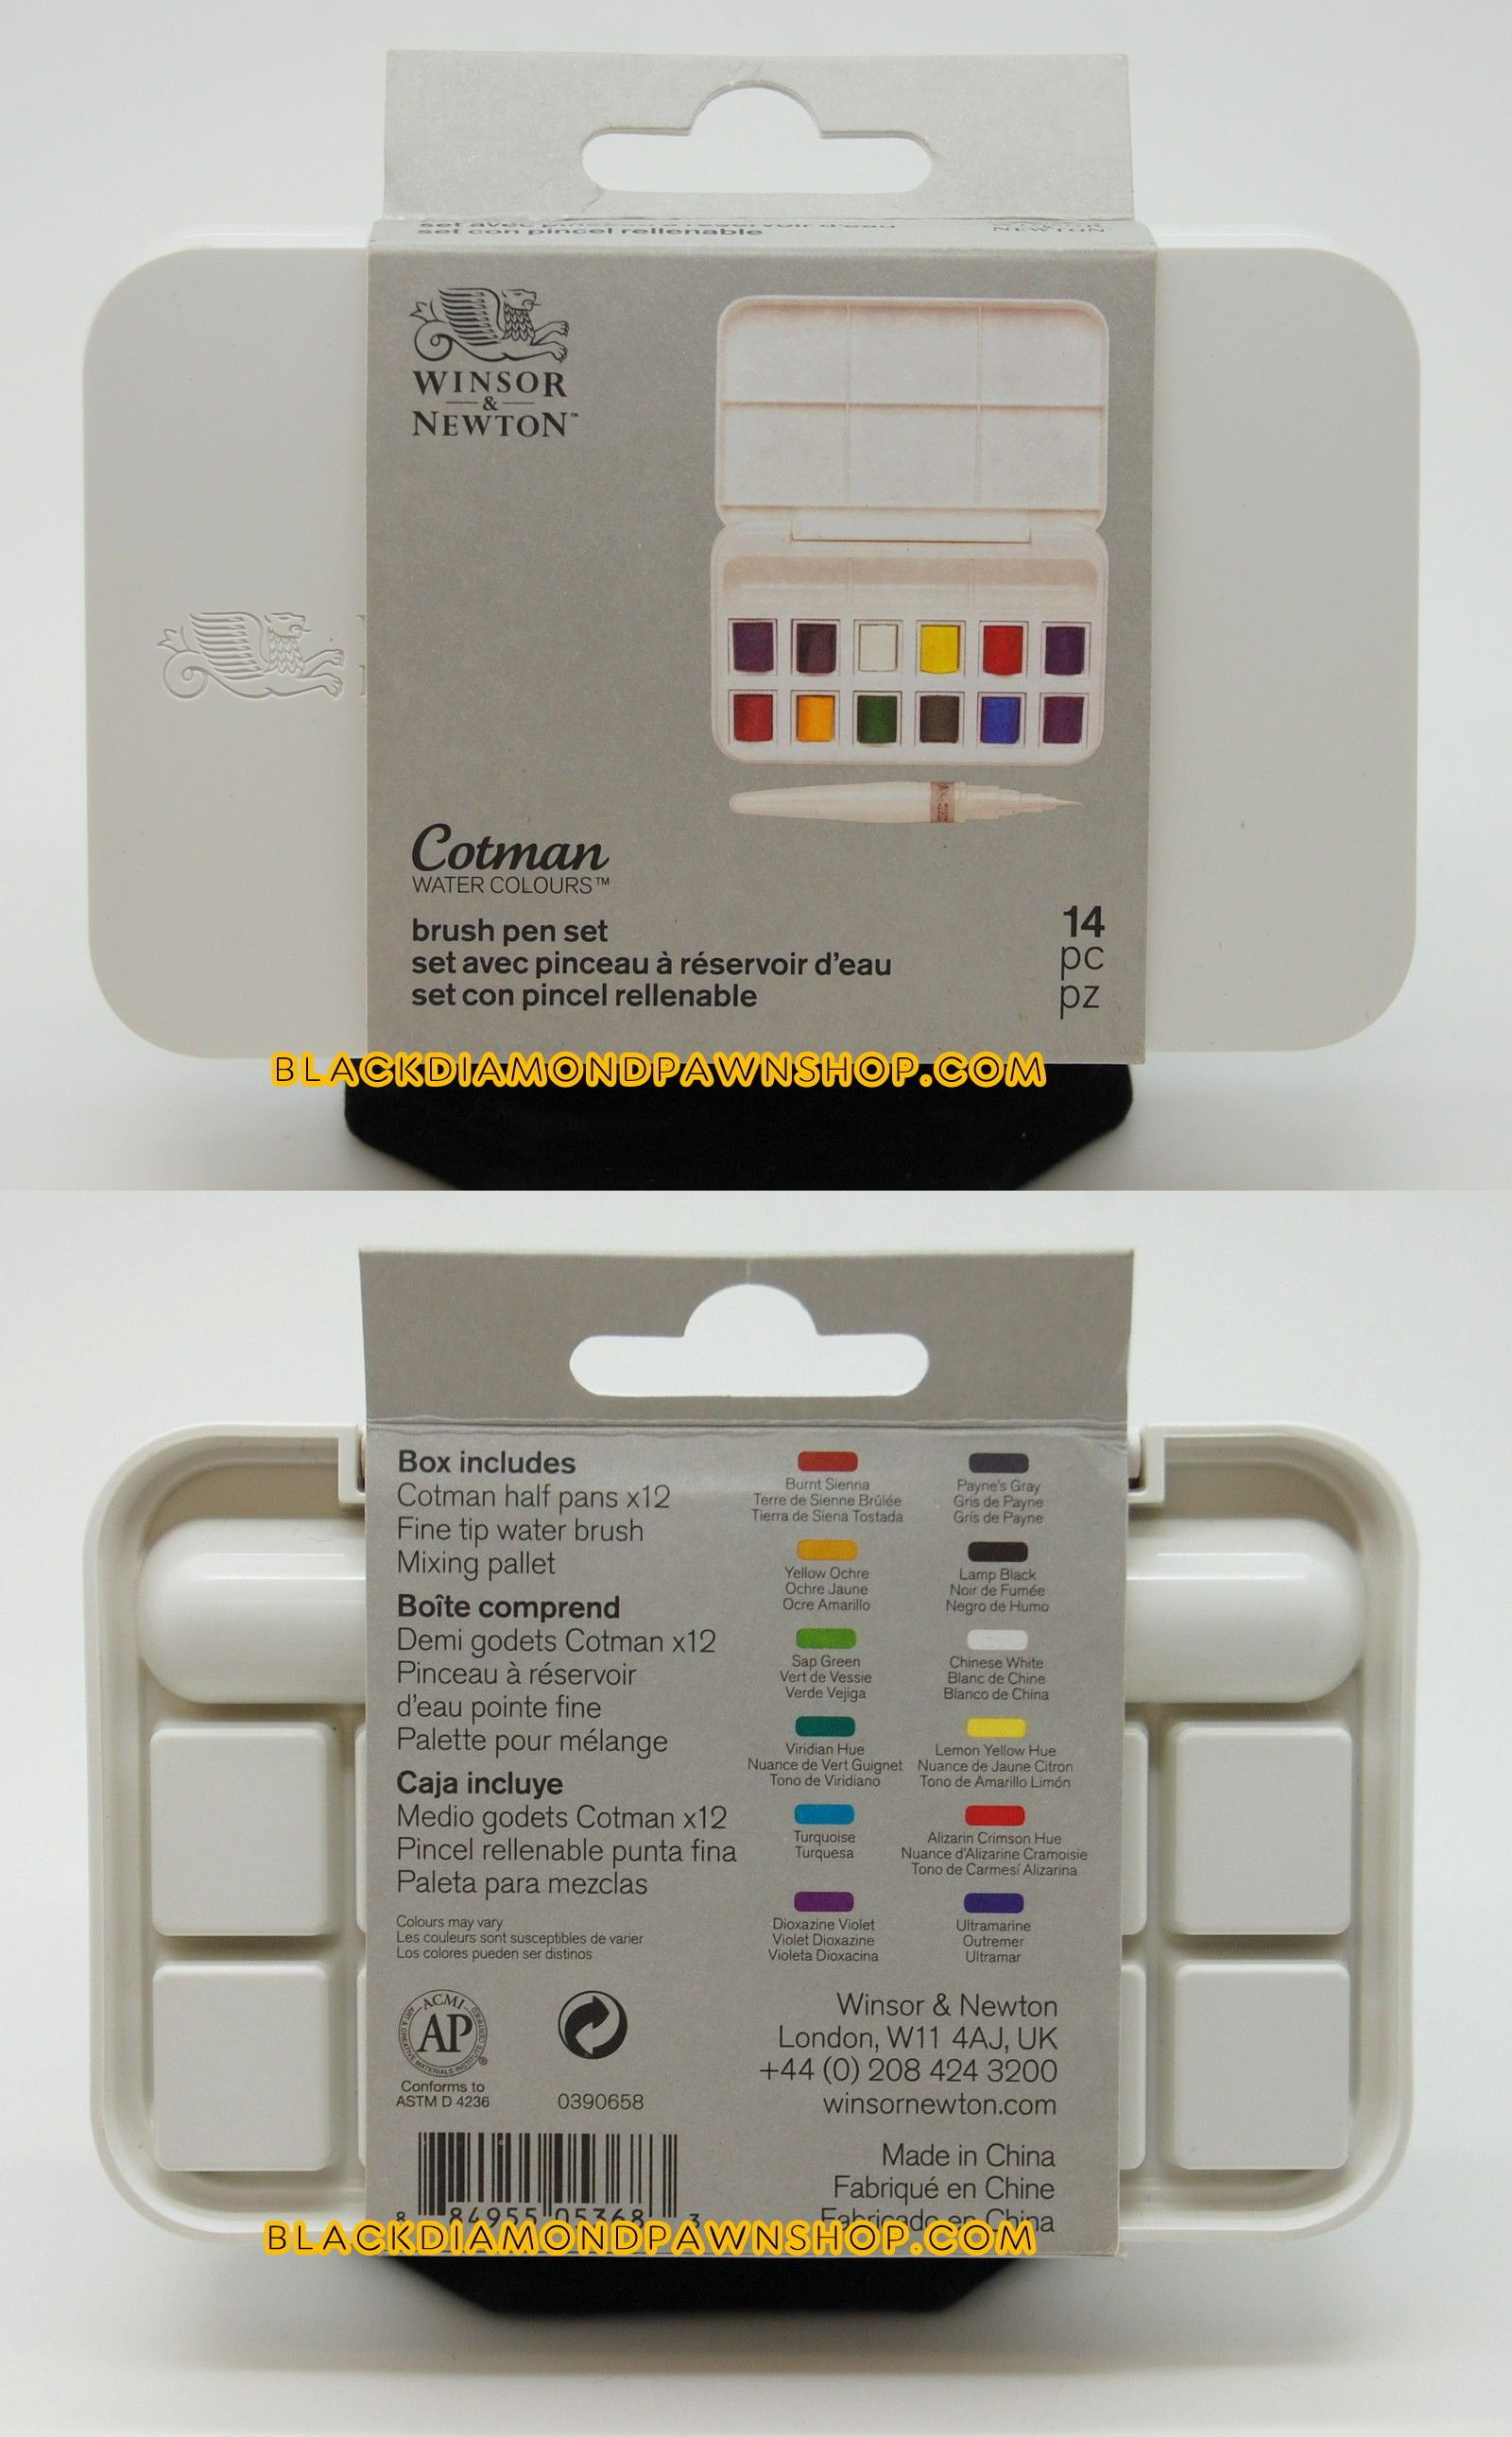 Paint 183102 Winsor And Newton Cotman Watercolours Brush Pen Set